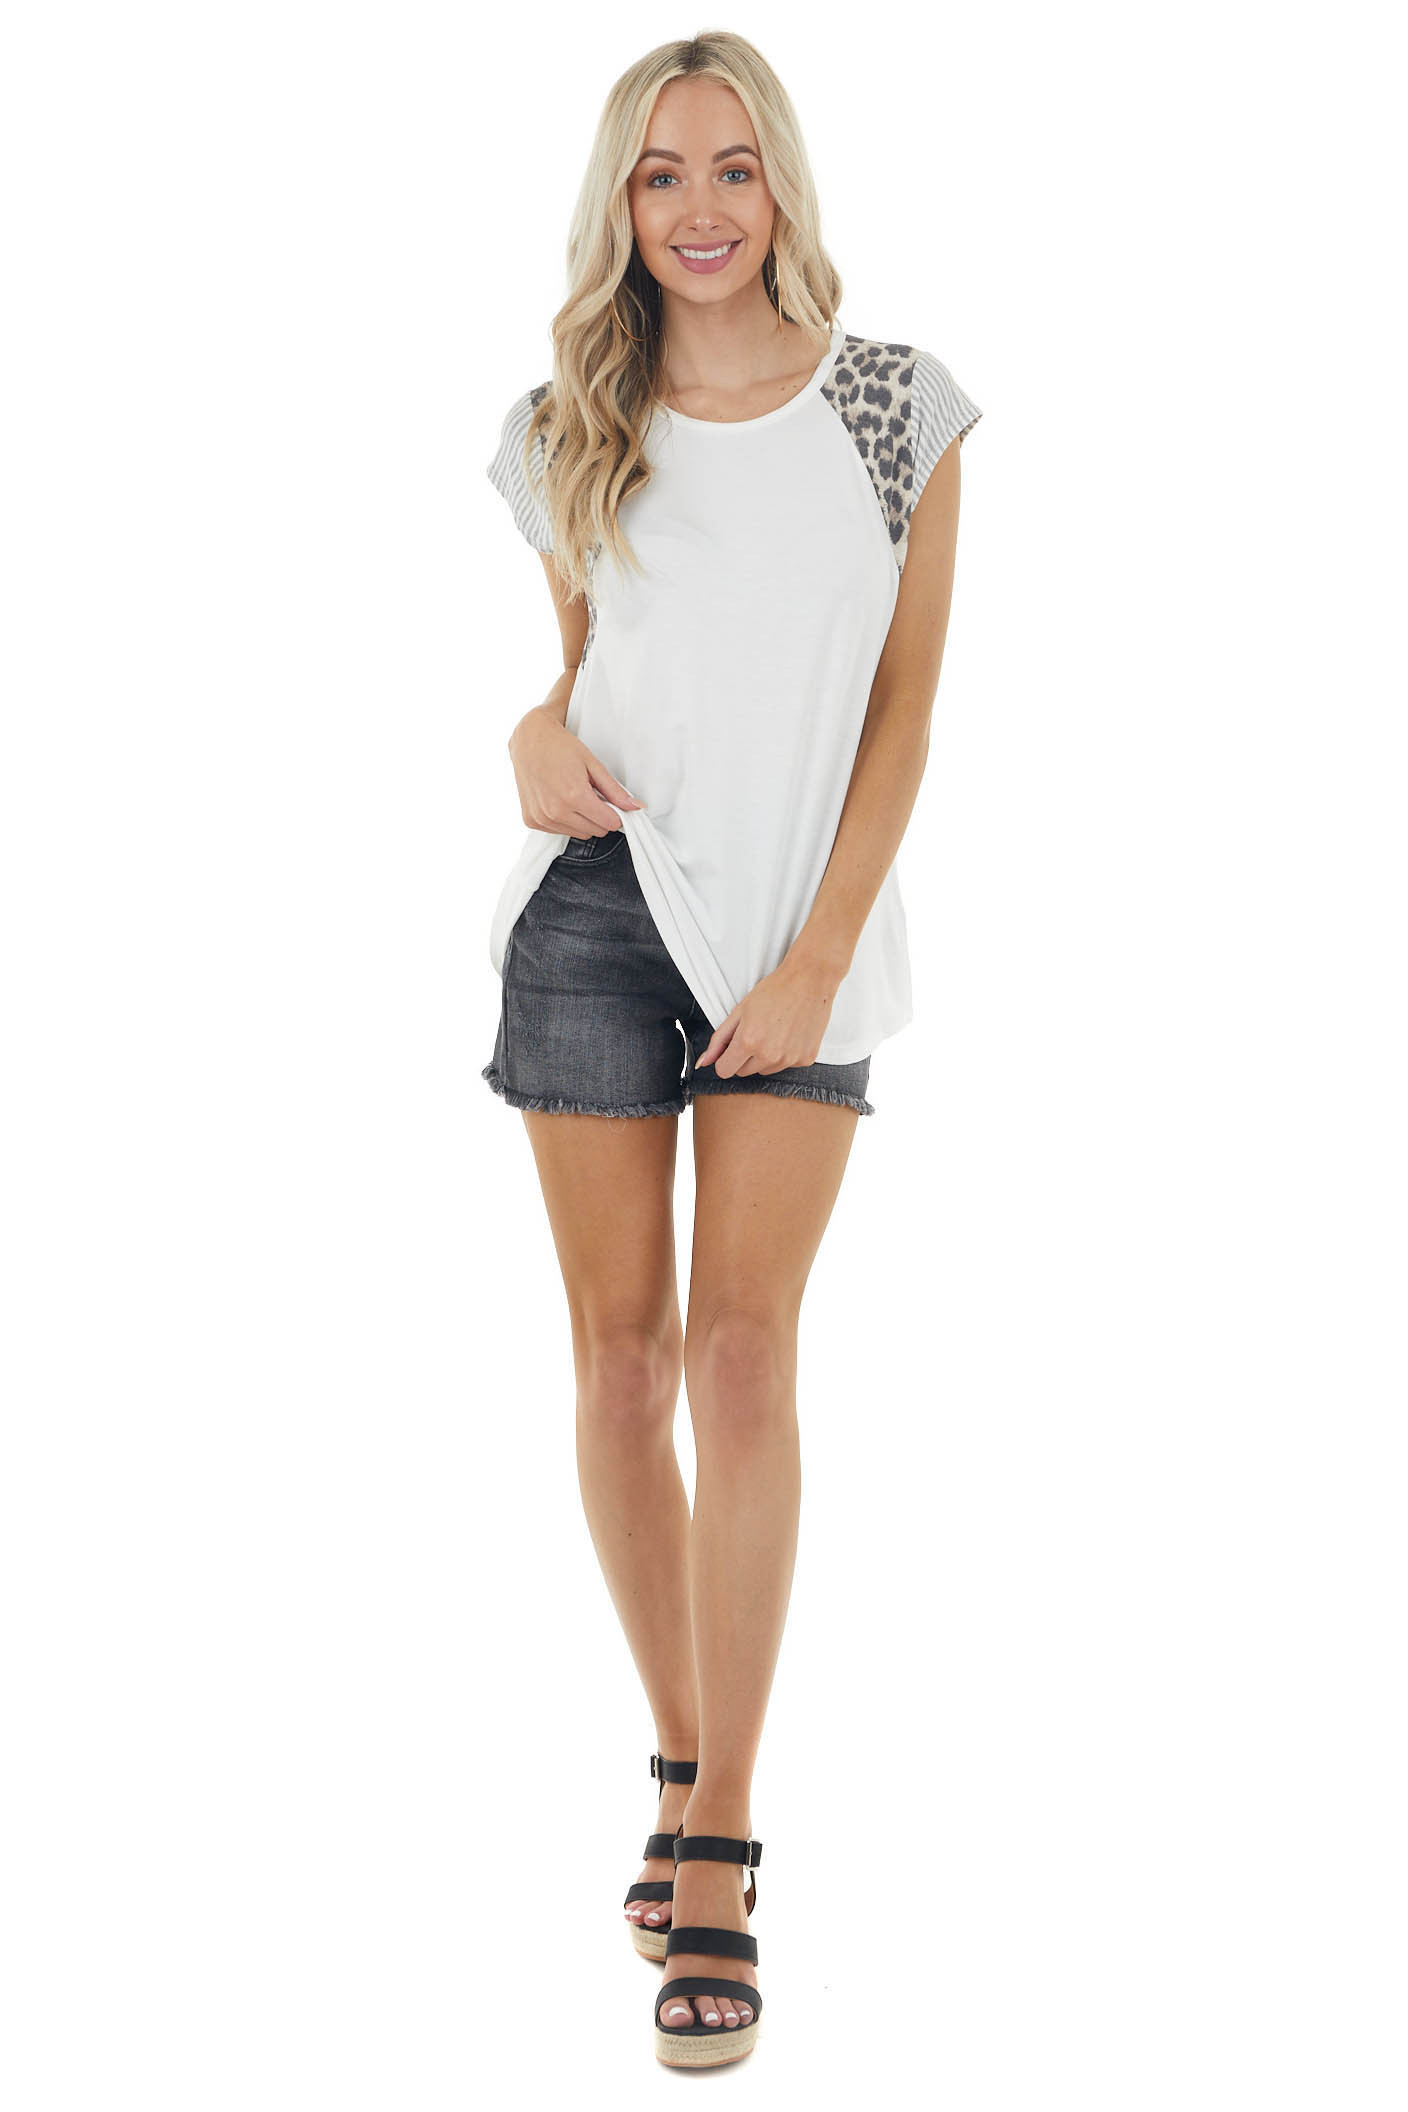 Ivory Knit Top with Short Multiprint Raglan Sleeves